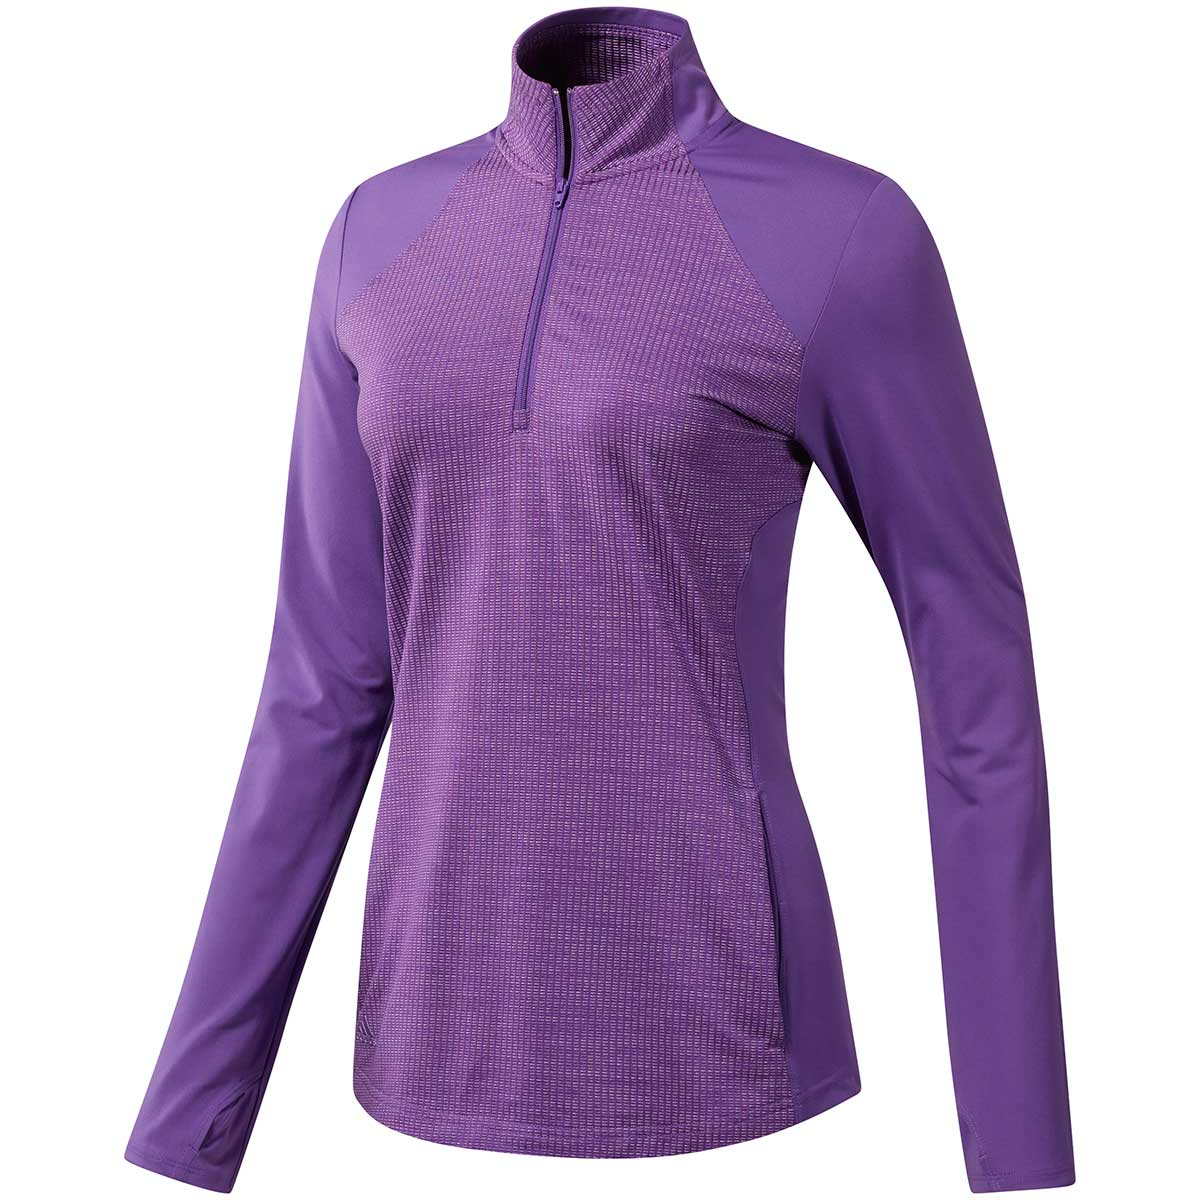 Adidas Women's Sport Layering 1/2 Zip Jacket - Active Purple